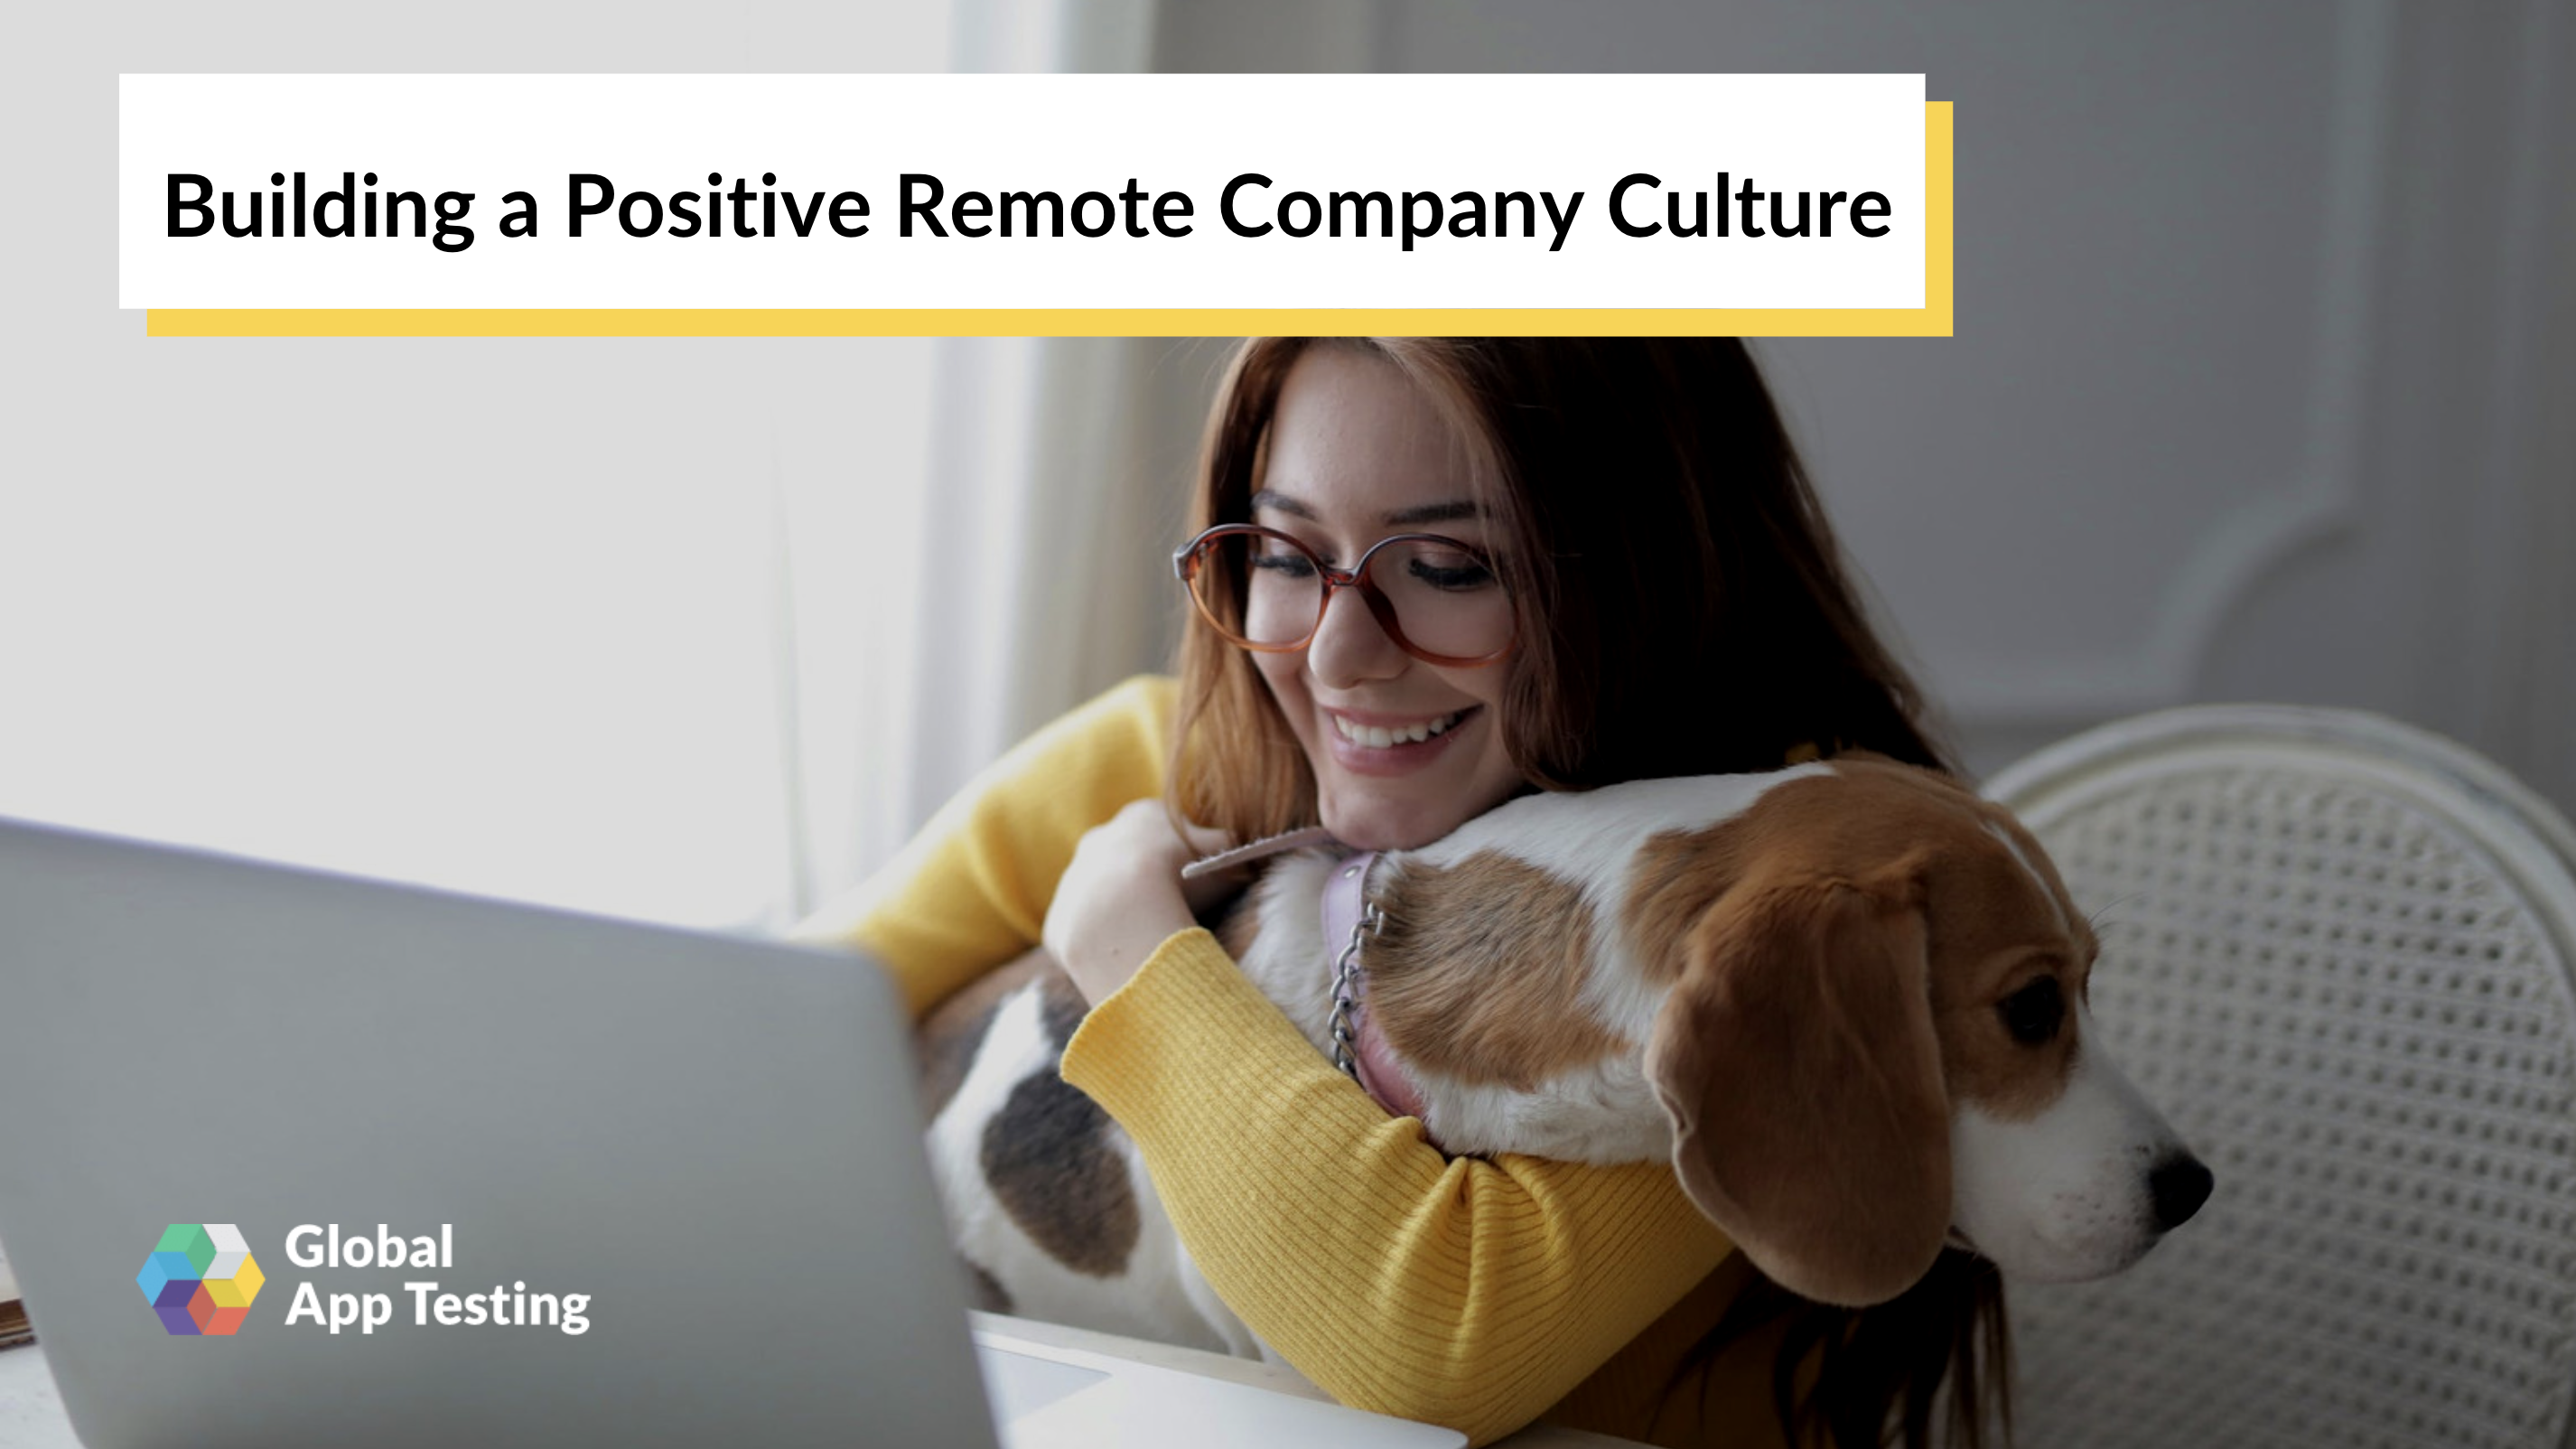 Building a Positive Remote Company Culture